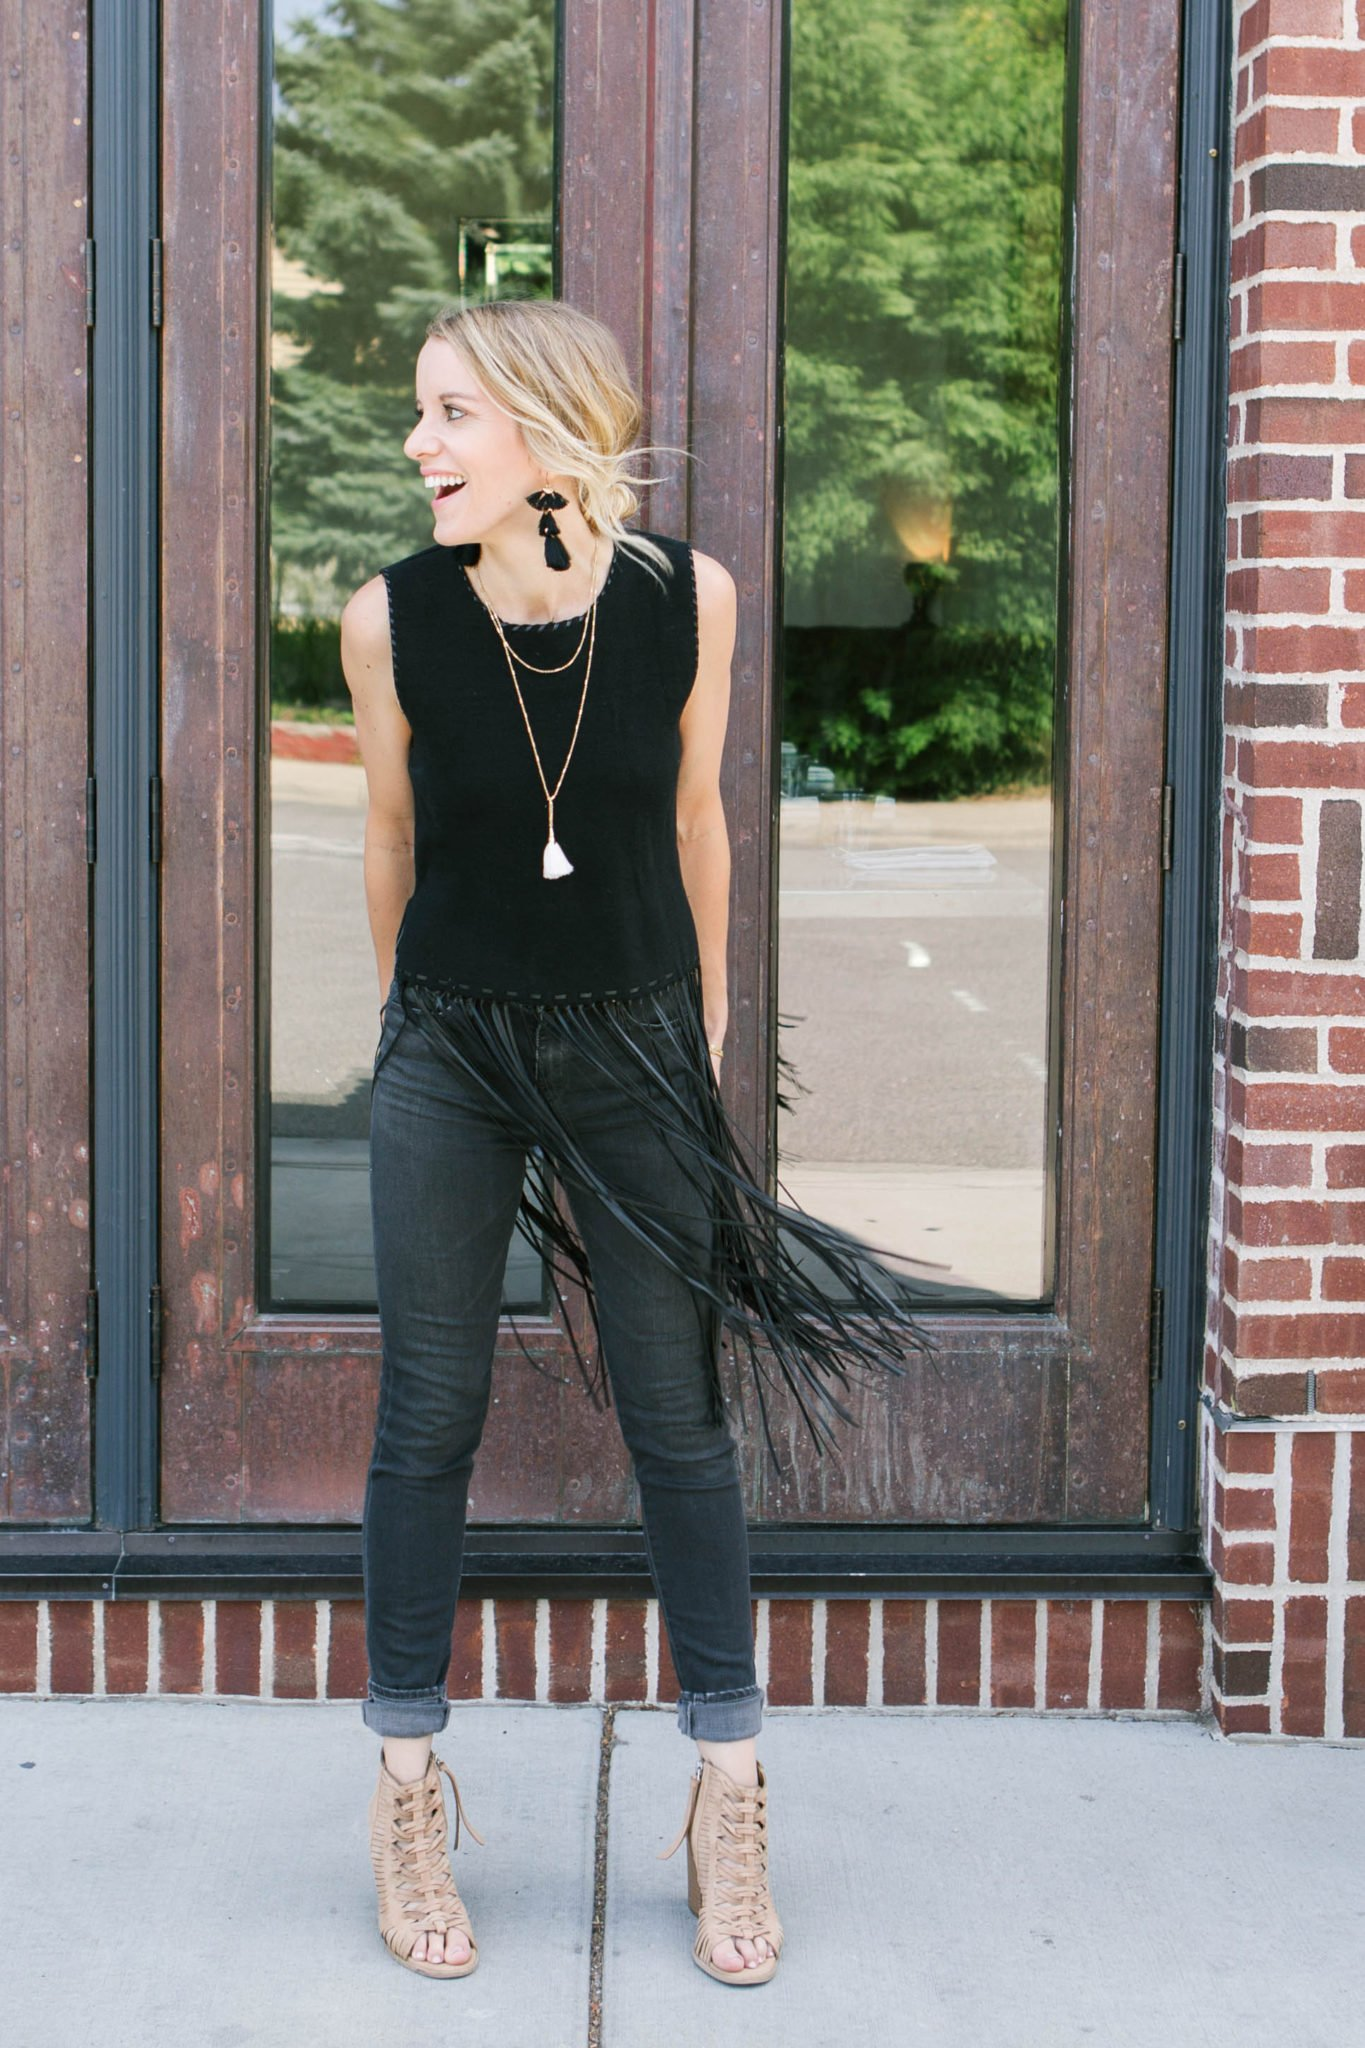 9 Perfect Concert Outfits [What to Wear to a Concert